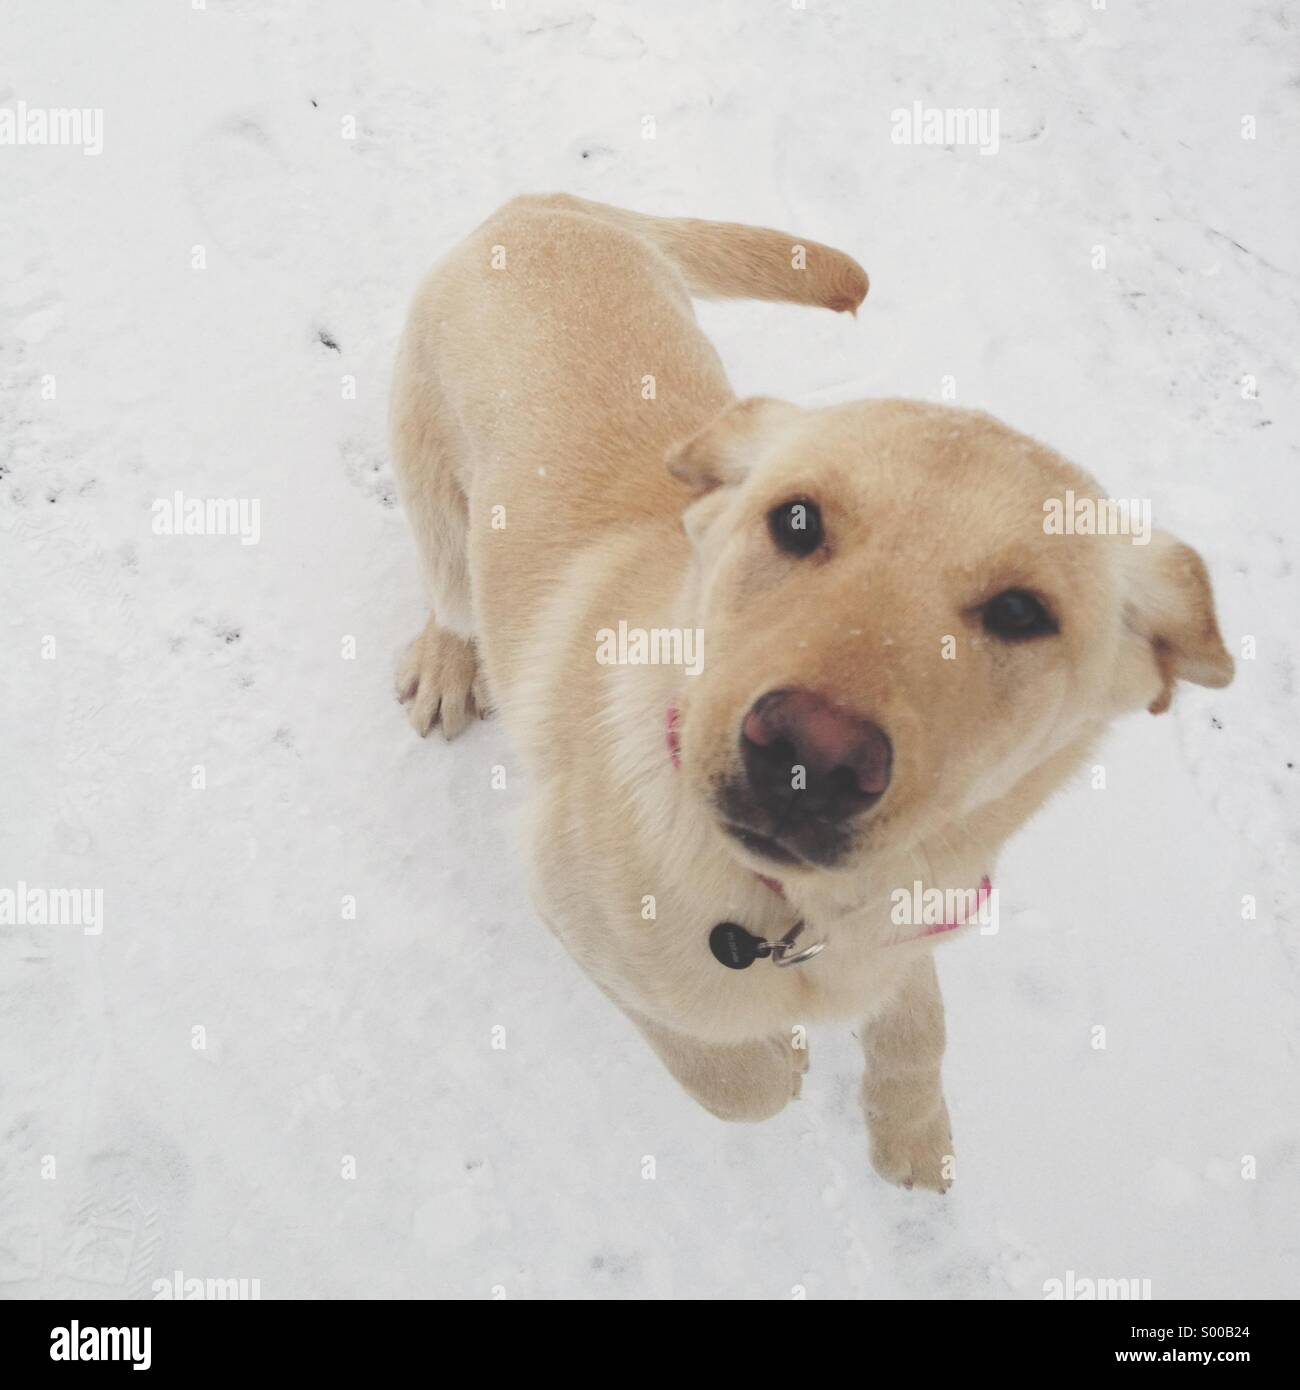 Dog in snow jumping - Stock Image